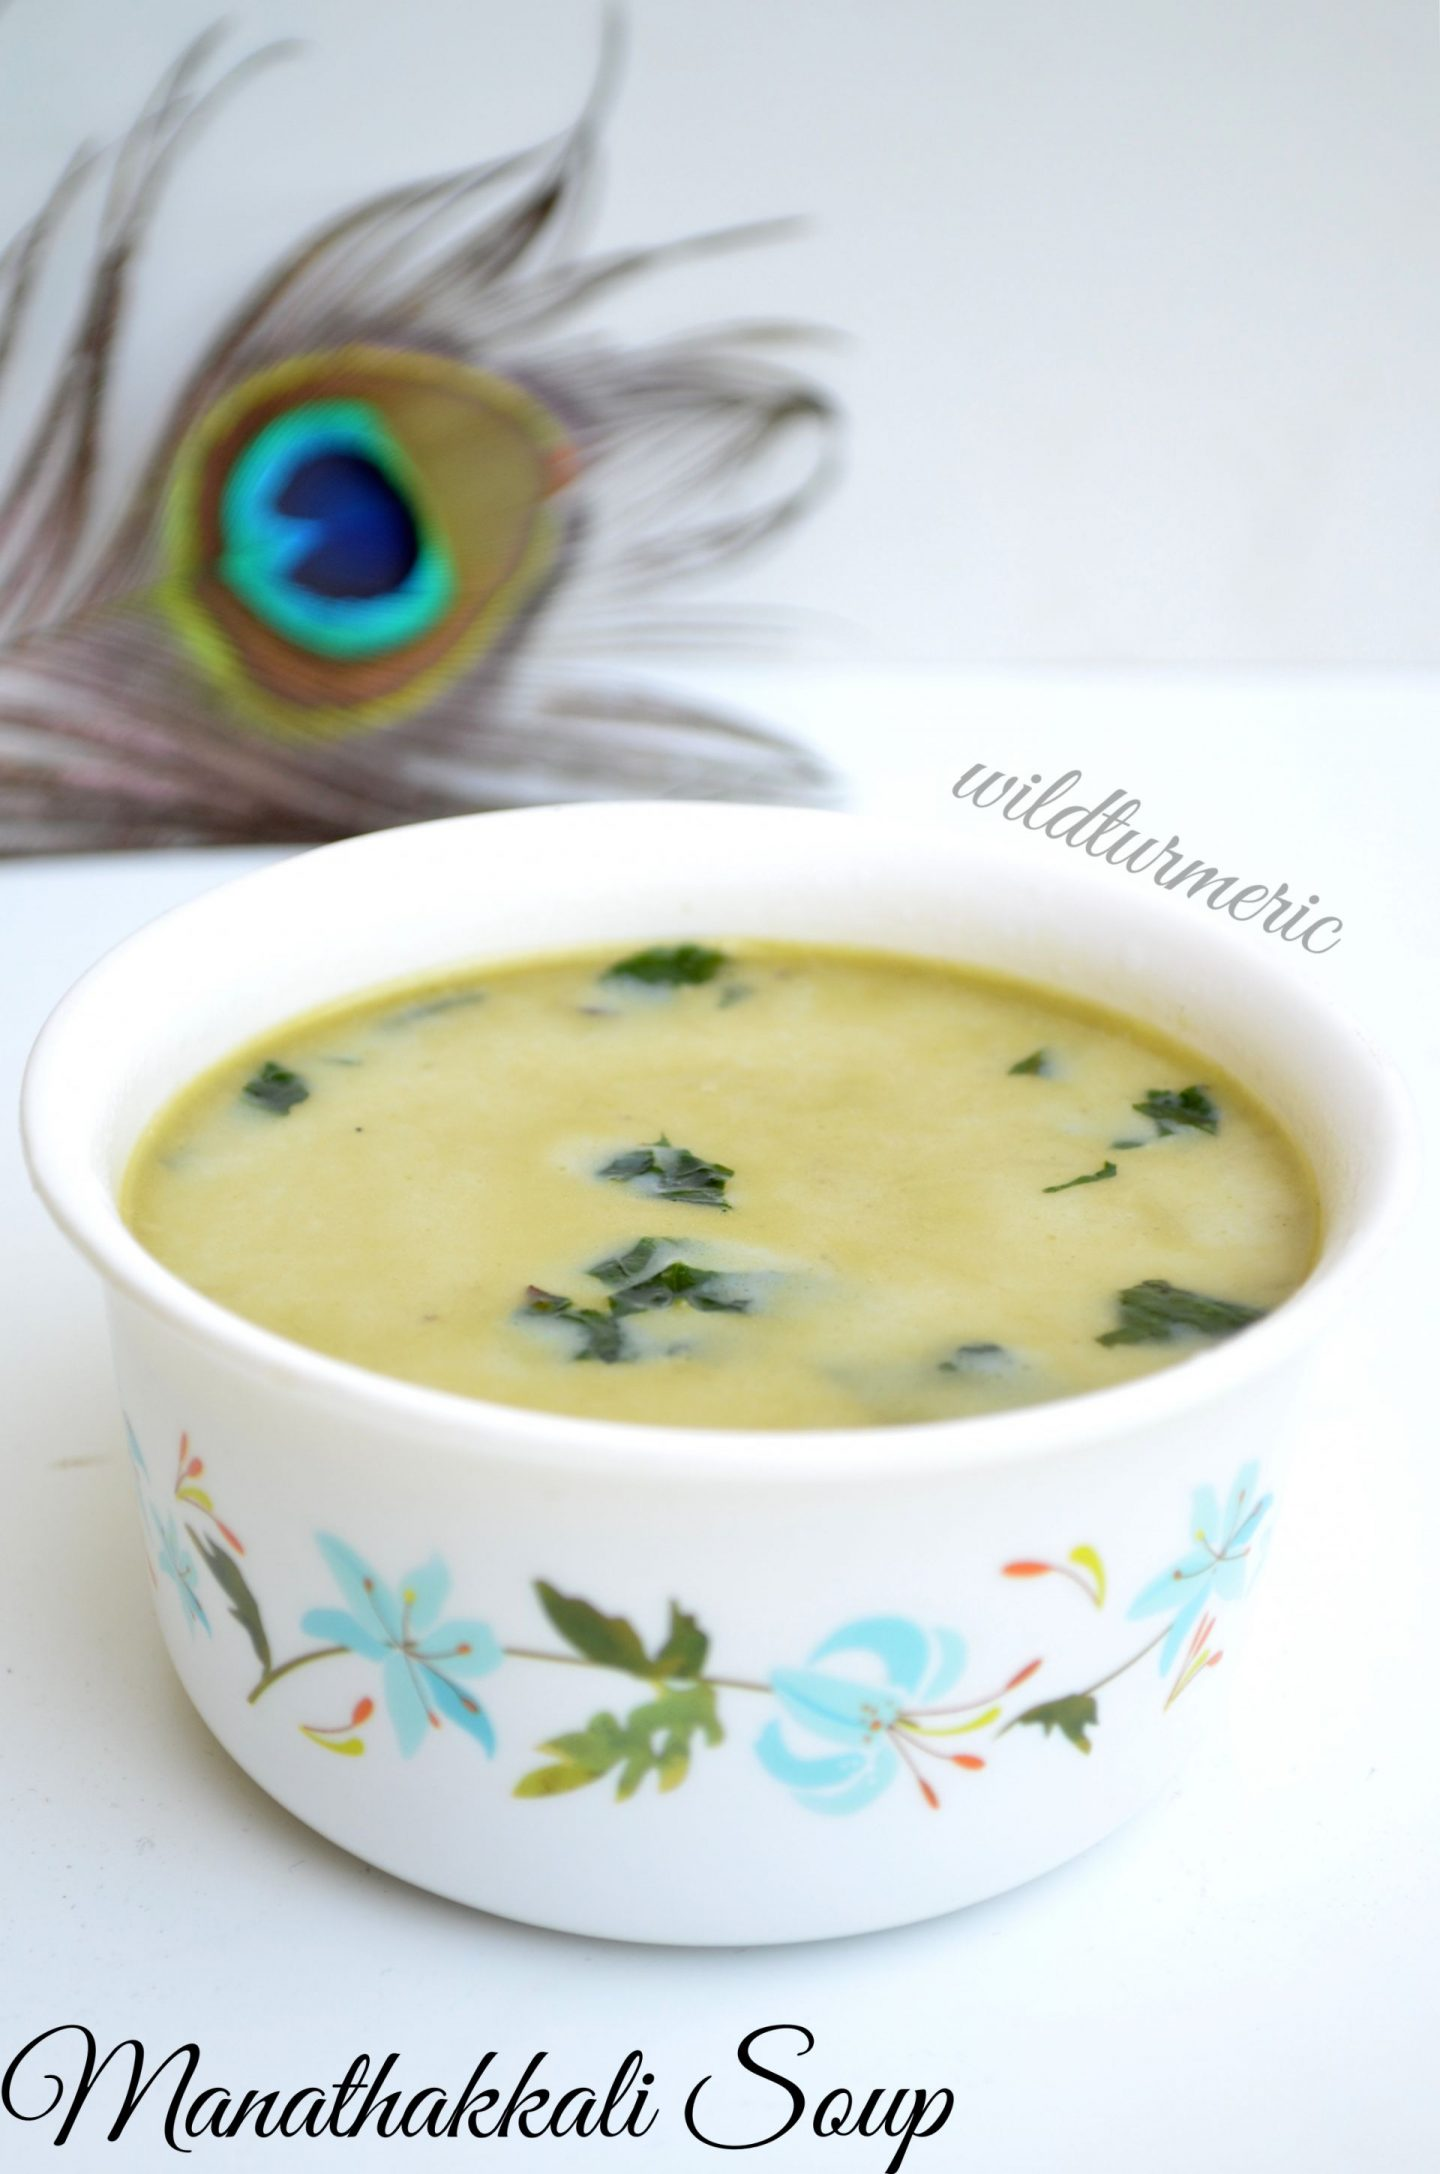 manathakkali soup recipe